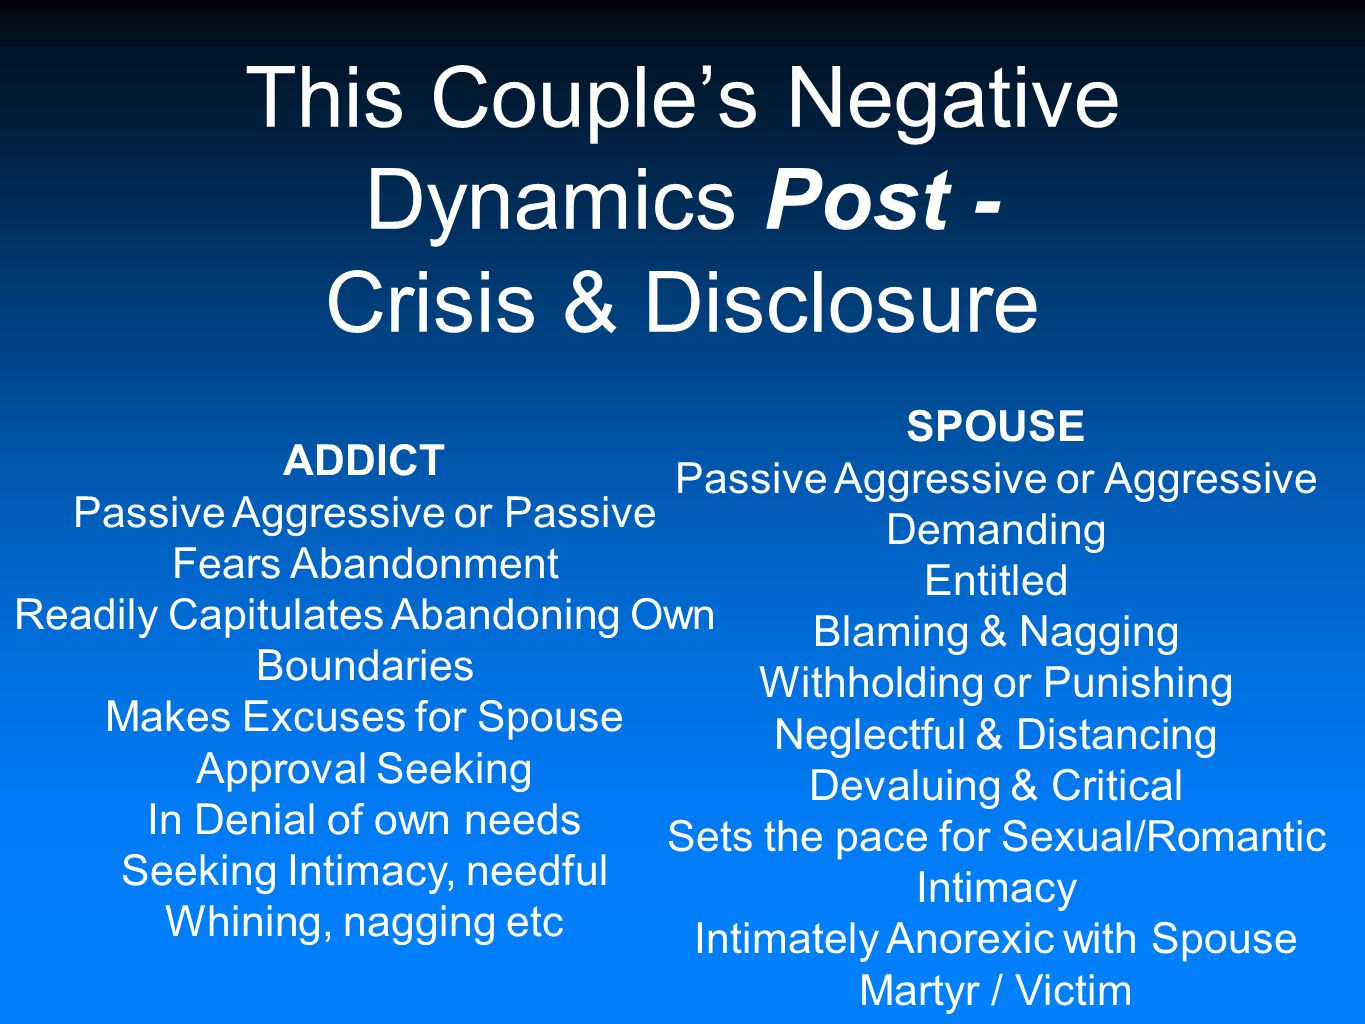 This Couple's Negative Dynamics Post - Crisis & Disclosure SPOUSE Passive Aggressive or Aggressive Demanding Entitled Blaming & Nagging Withholding or